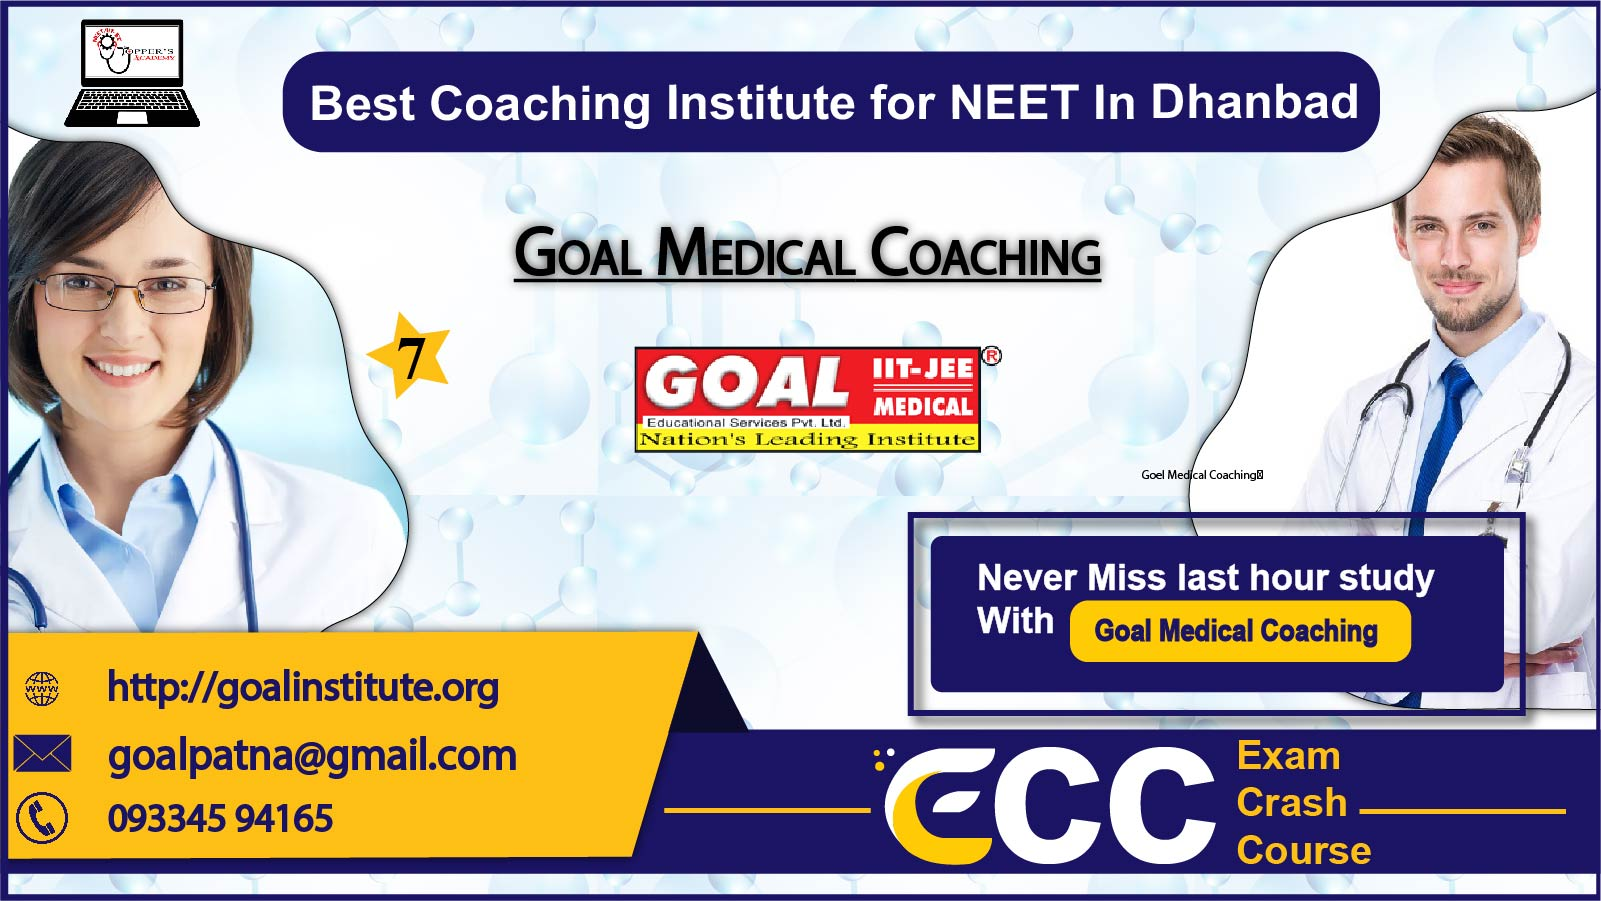 Goel Medical Coaching Centre in Dhanbad